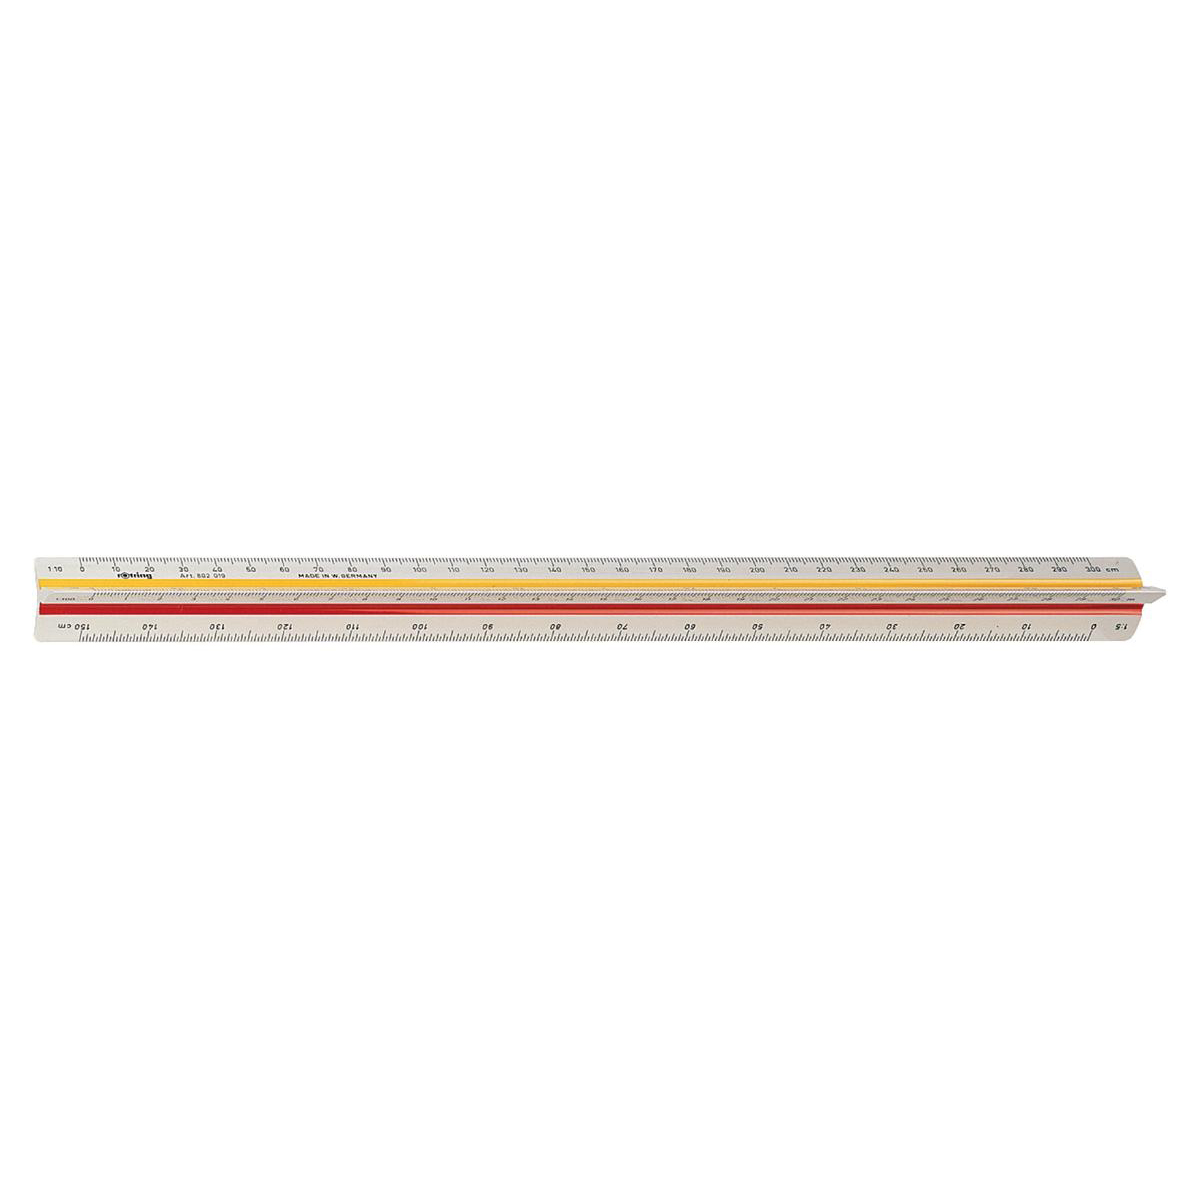 Image for Rotring Ruler Triangular Reduction Scale 1 Architect 1:10 to 1:1250 with 2 Coloured Flutings Ref S0220481